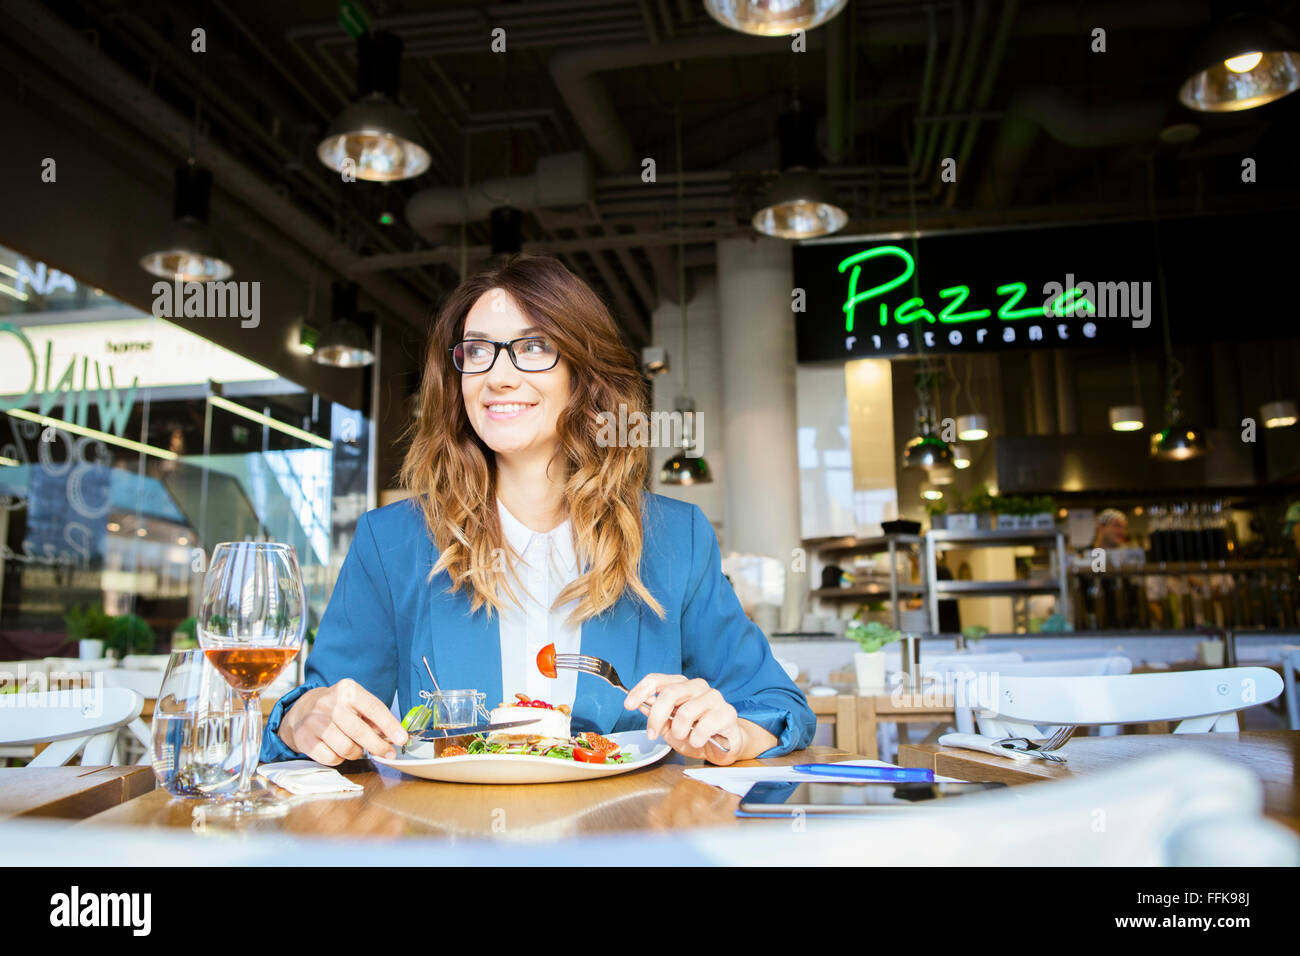 Mid adult woman lunching in restaurant - Stock Image